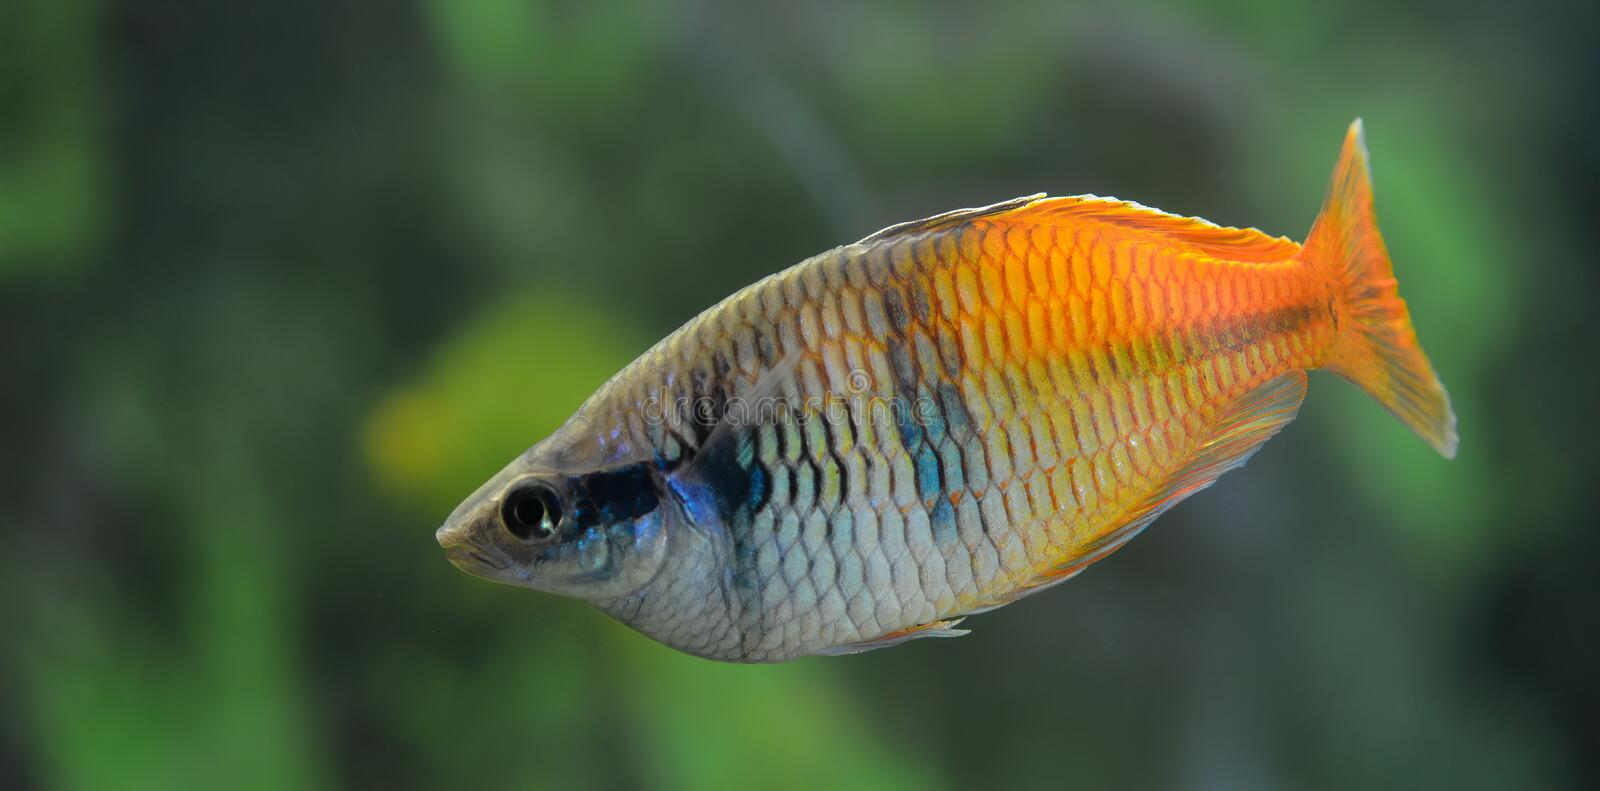 boesemani rainbowfish boesemani rainbow fish boesemani boesemani rainbow size boesemani rainbow fish for sale boesemani rainbowfish size boesemani rainbow fish care boesemani fish boesemani rainbow tank mates boesemani rainbow fish male female boeseman female boesemani rainbow fish boesemani rainbow for sale boesemani rainbow female boesemani rainbowfish tank mates boesemani rainbow care bosami rainbow boesemani rainbow tank size boesemani tropical rainbowfish breeding boesemani rainbow fish boeseman's rainbowfish size boesemani rainbow fish breeding freshwater boesemani rainbow boeseman's rainbowfish freshwater fish best food for boesemani rainbow fish gary lange boesemani rainbowfish boeseman's rainbow boeseman's rainbowfish care gary lange boesemani rainbowfish for sale